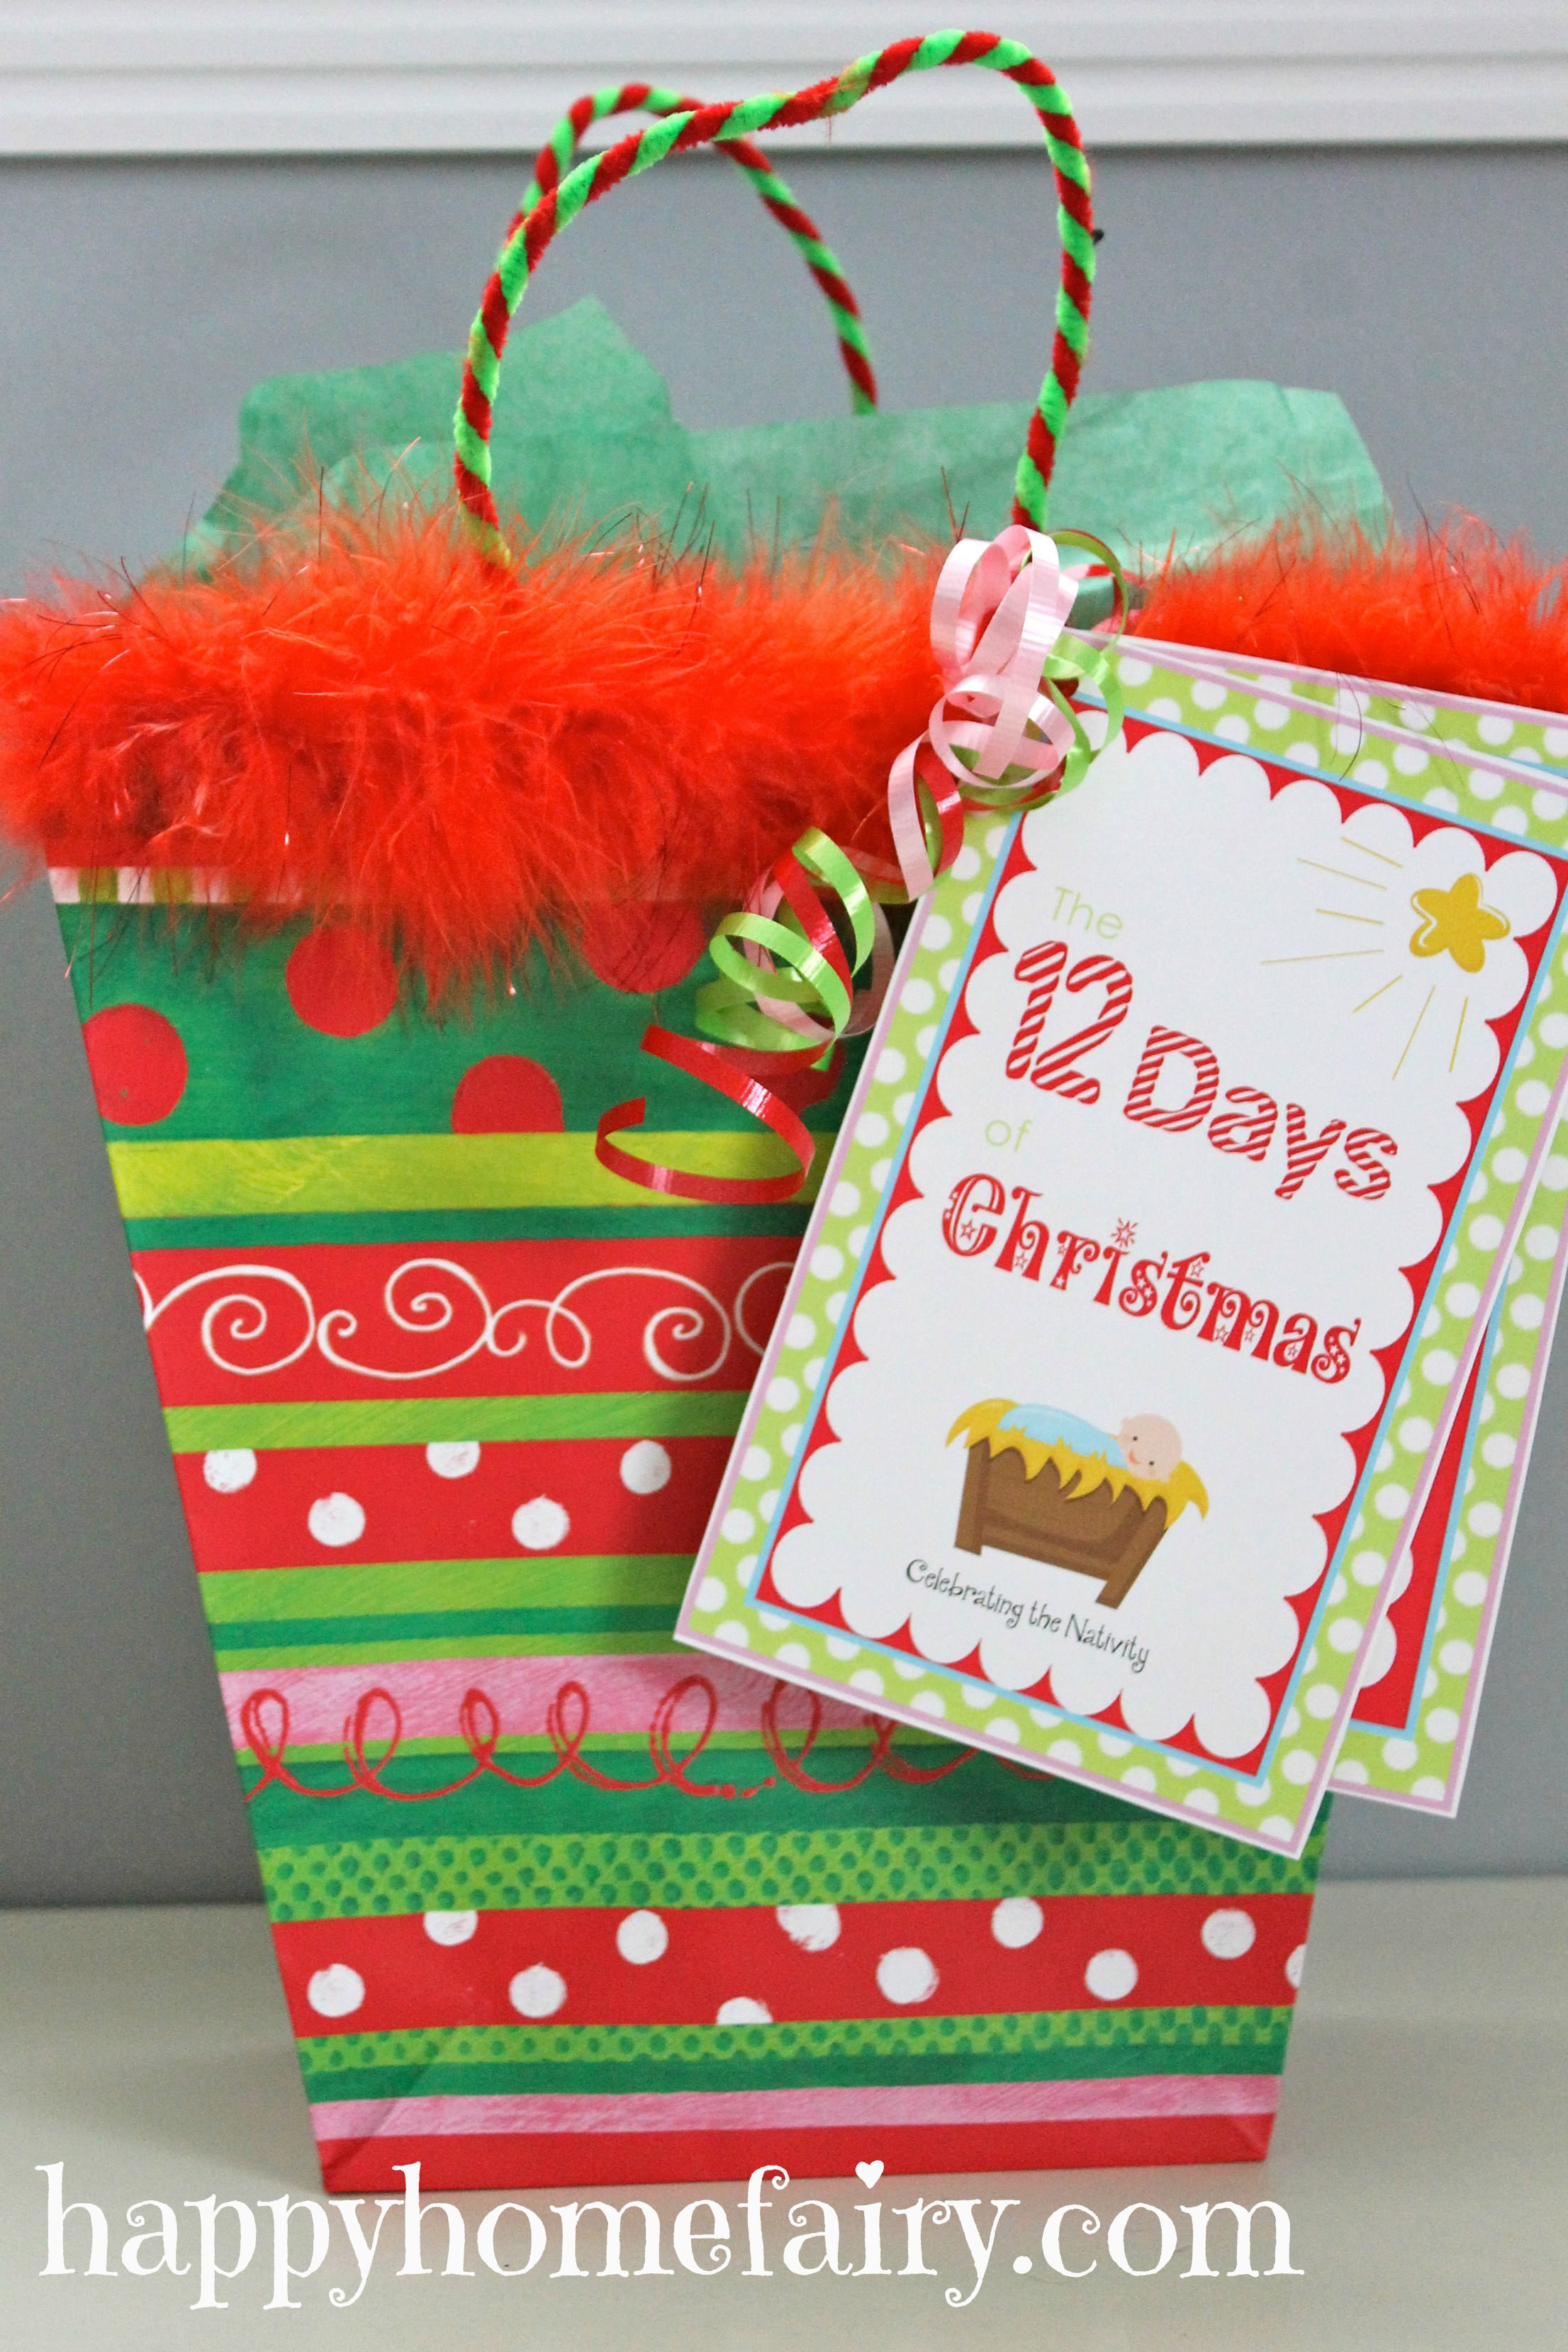 The 12 Days Before Christmas